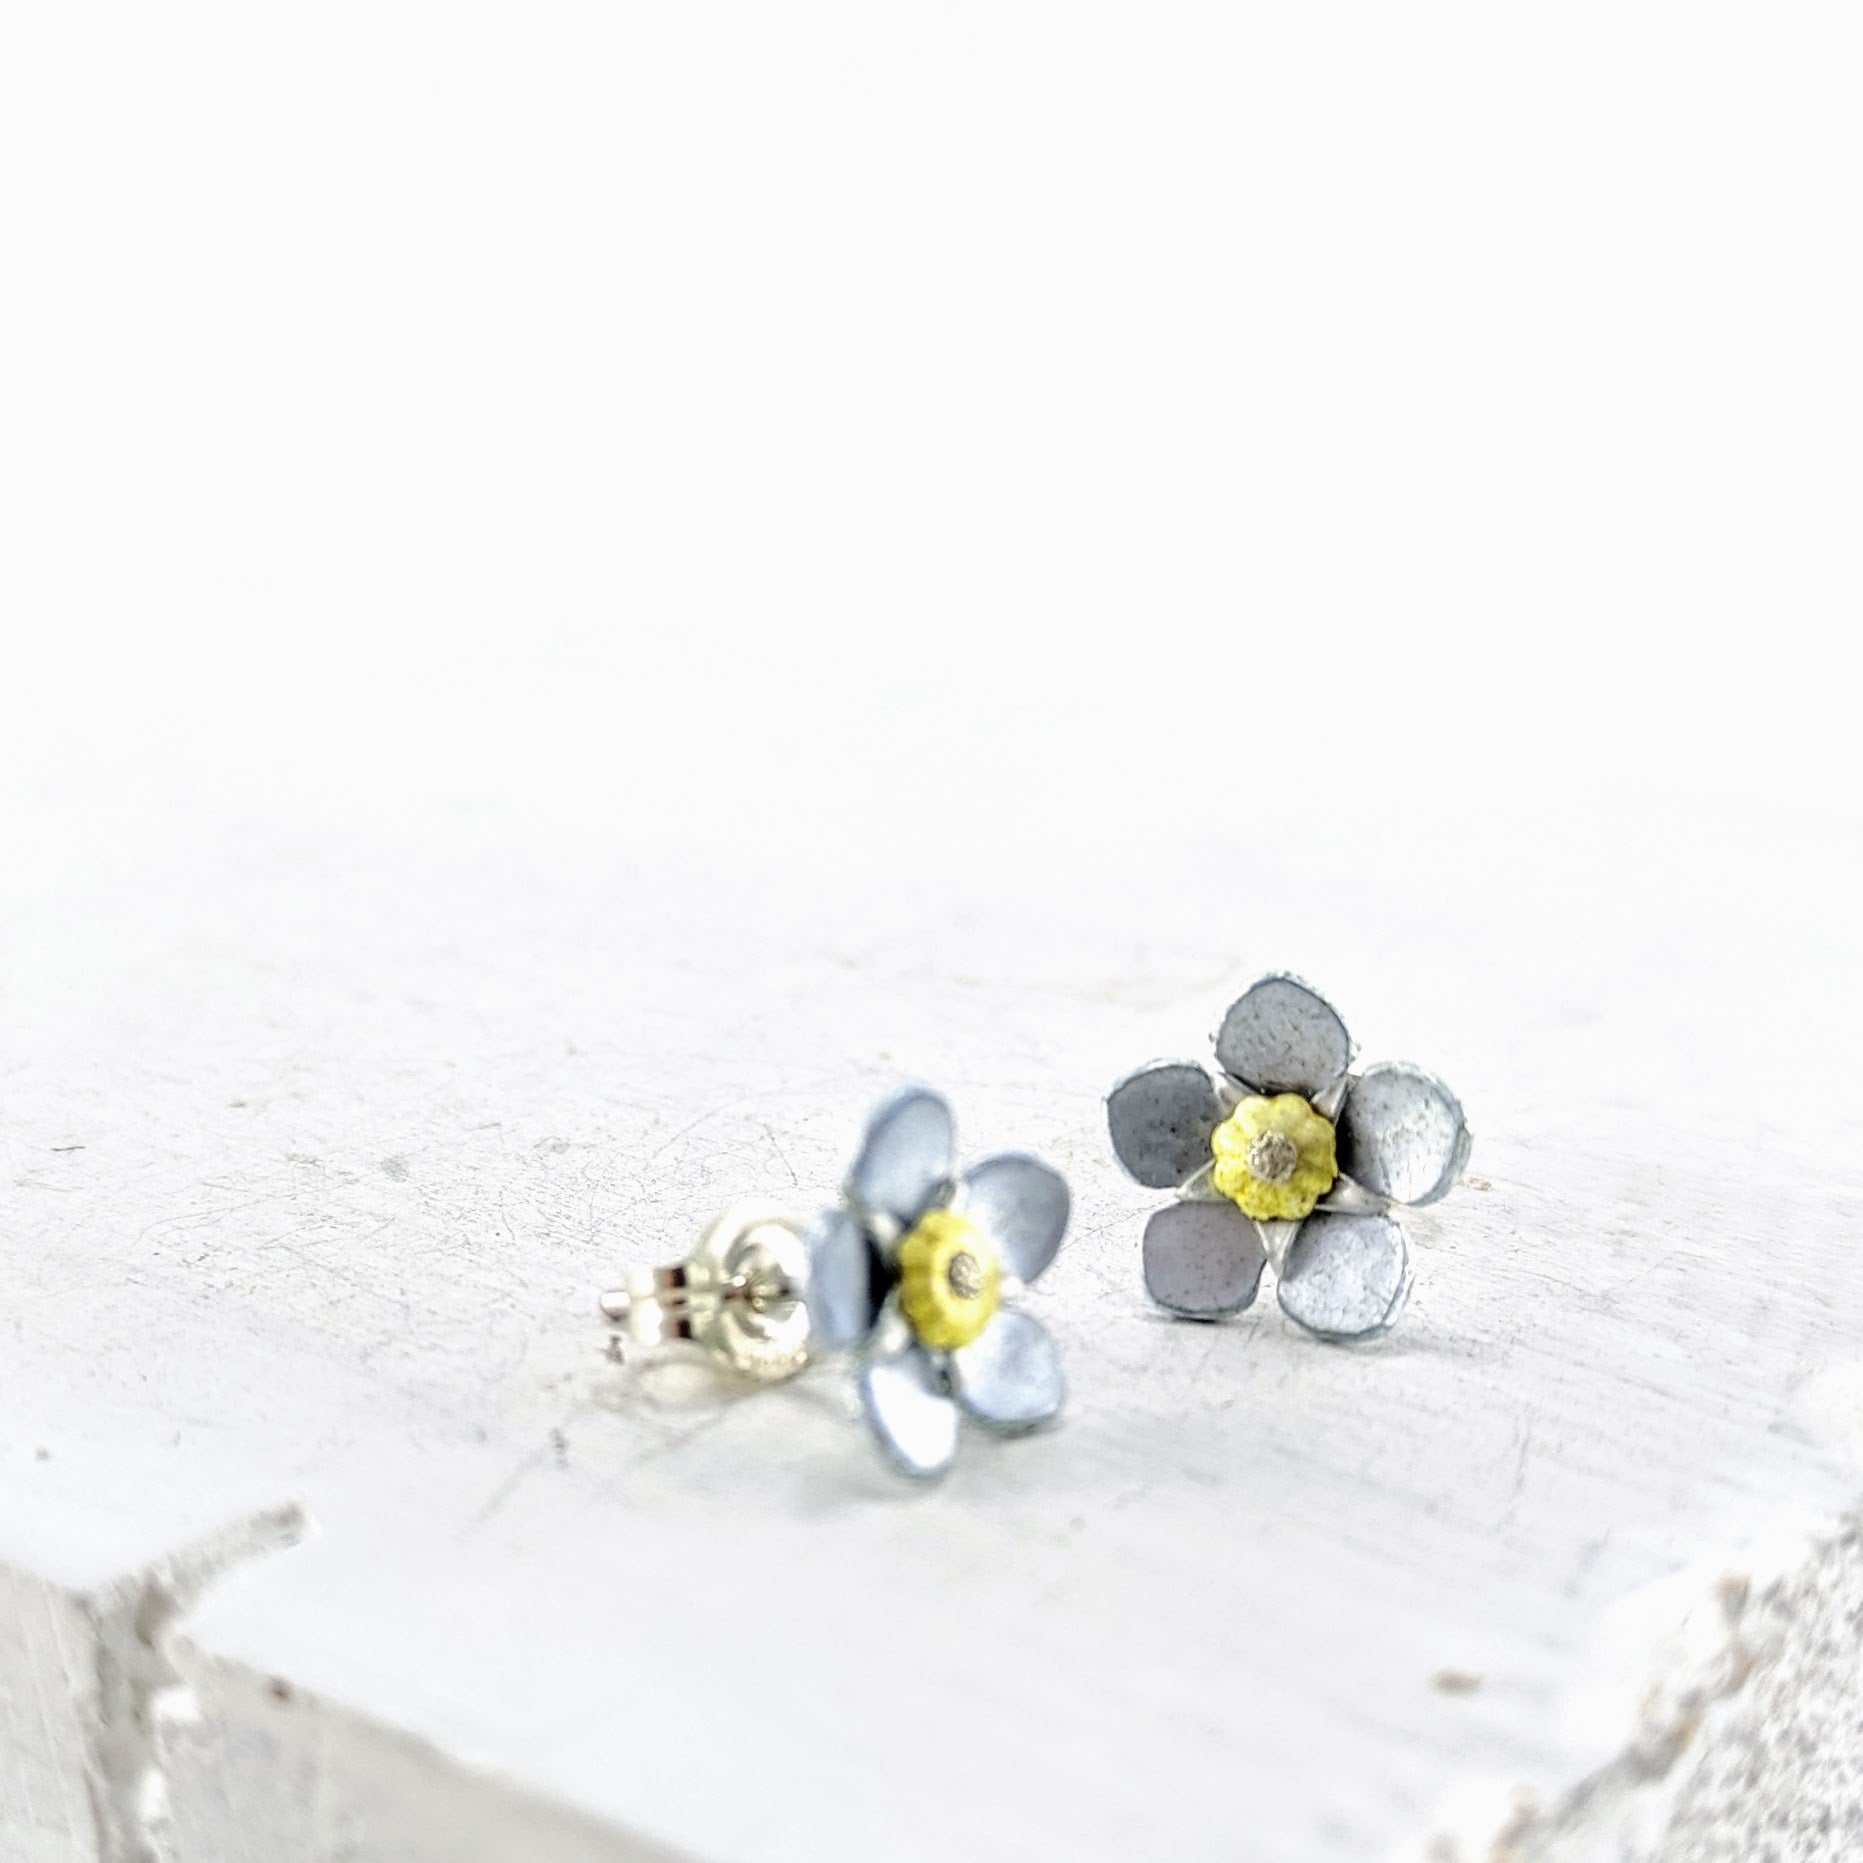 Unique jewellery handmade in New Zealand by Adele Stewart Maker.  These studs are pale blue and yellow enamel on fine silver.  They are forget-me-not flower studs.